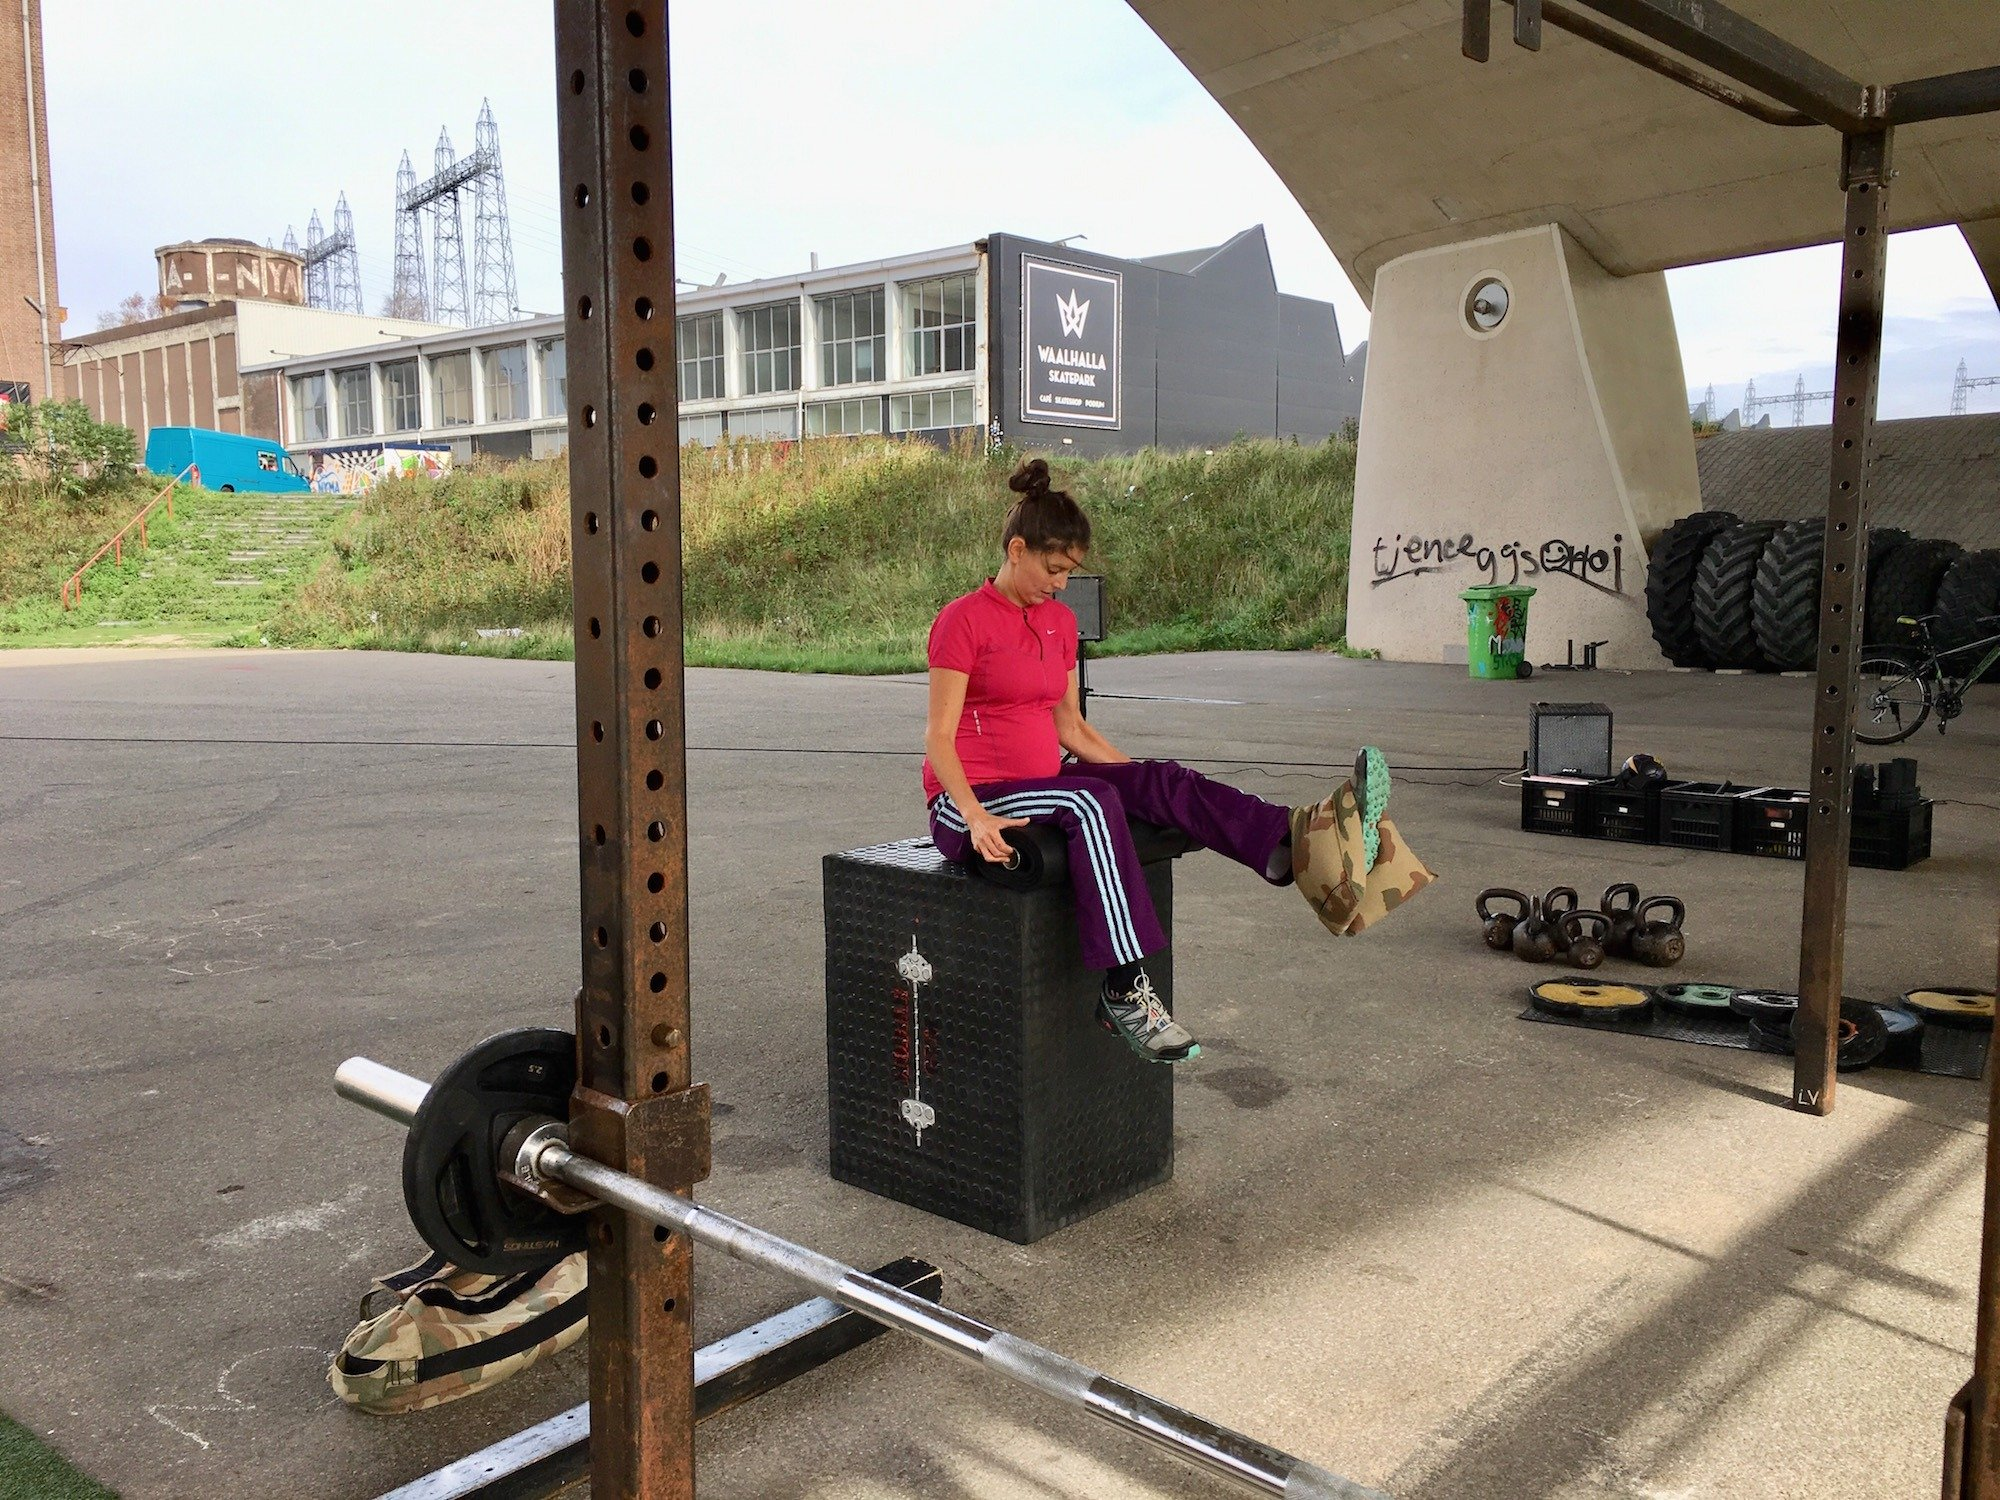 NYMA OUTDOOR GYM 08-09-2018